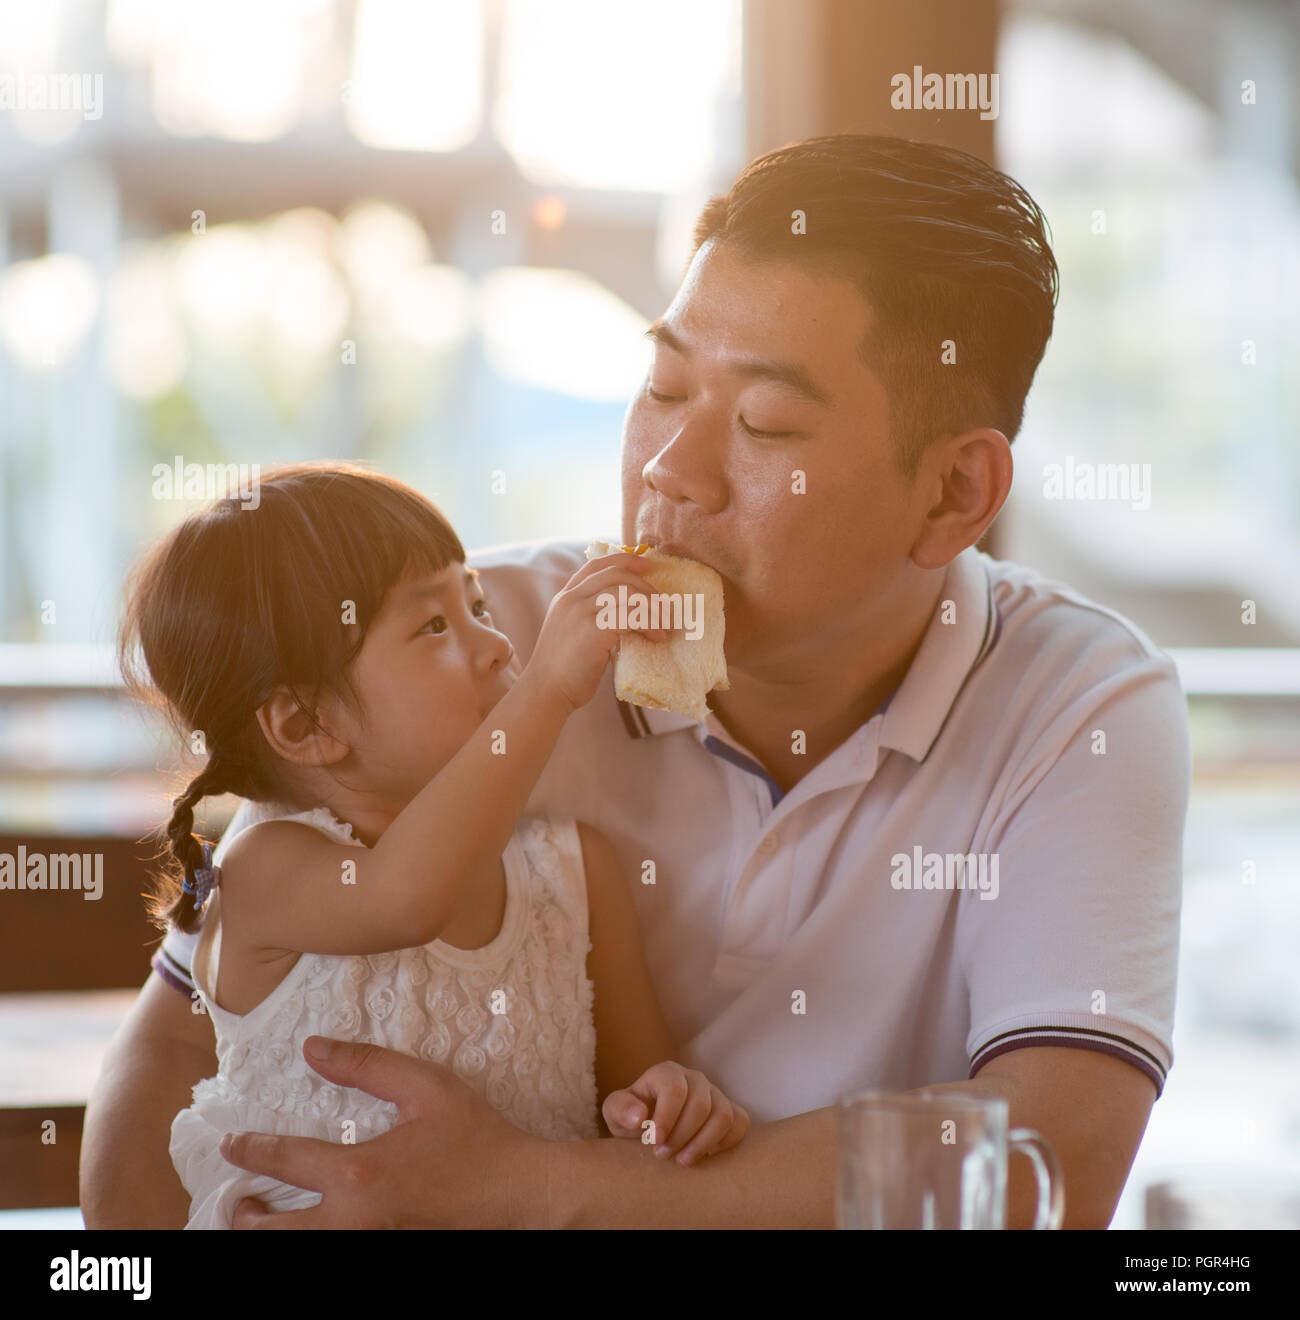 Child feeding bread to daddy at cafeteria. Asian family outdoor lifestyle with natural light. - Stock Image